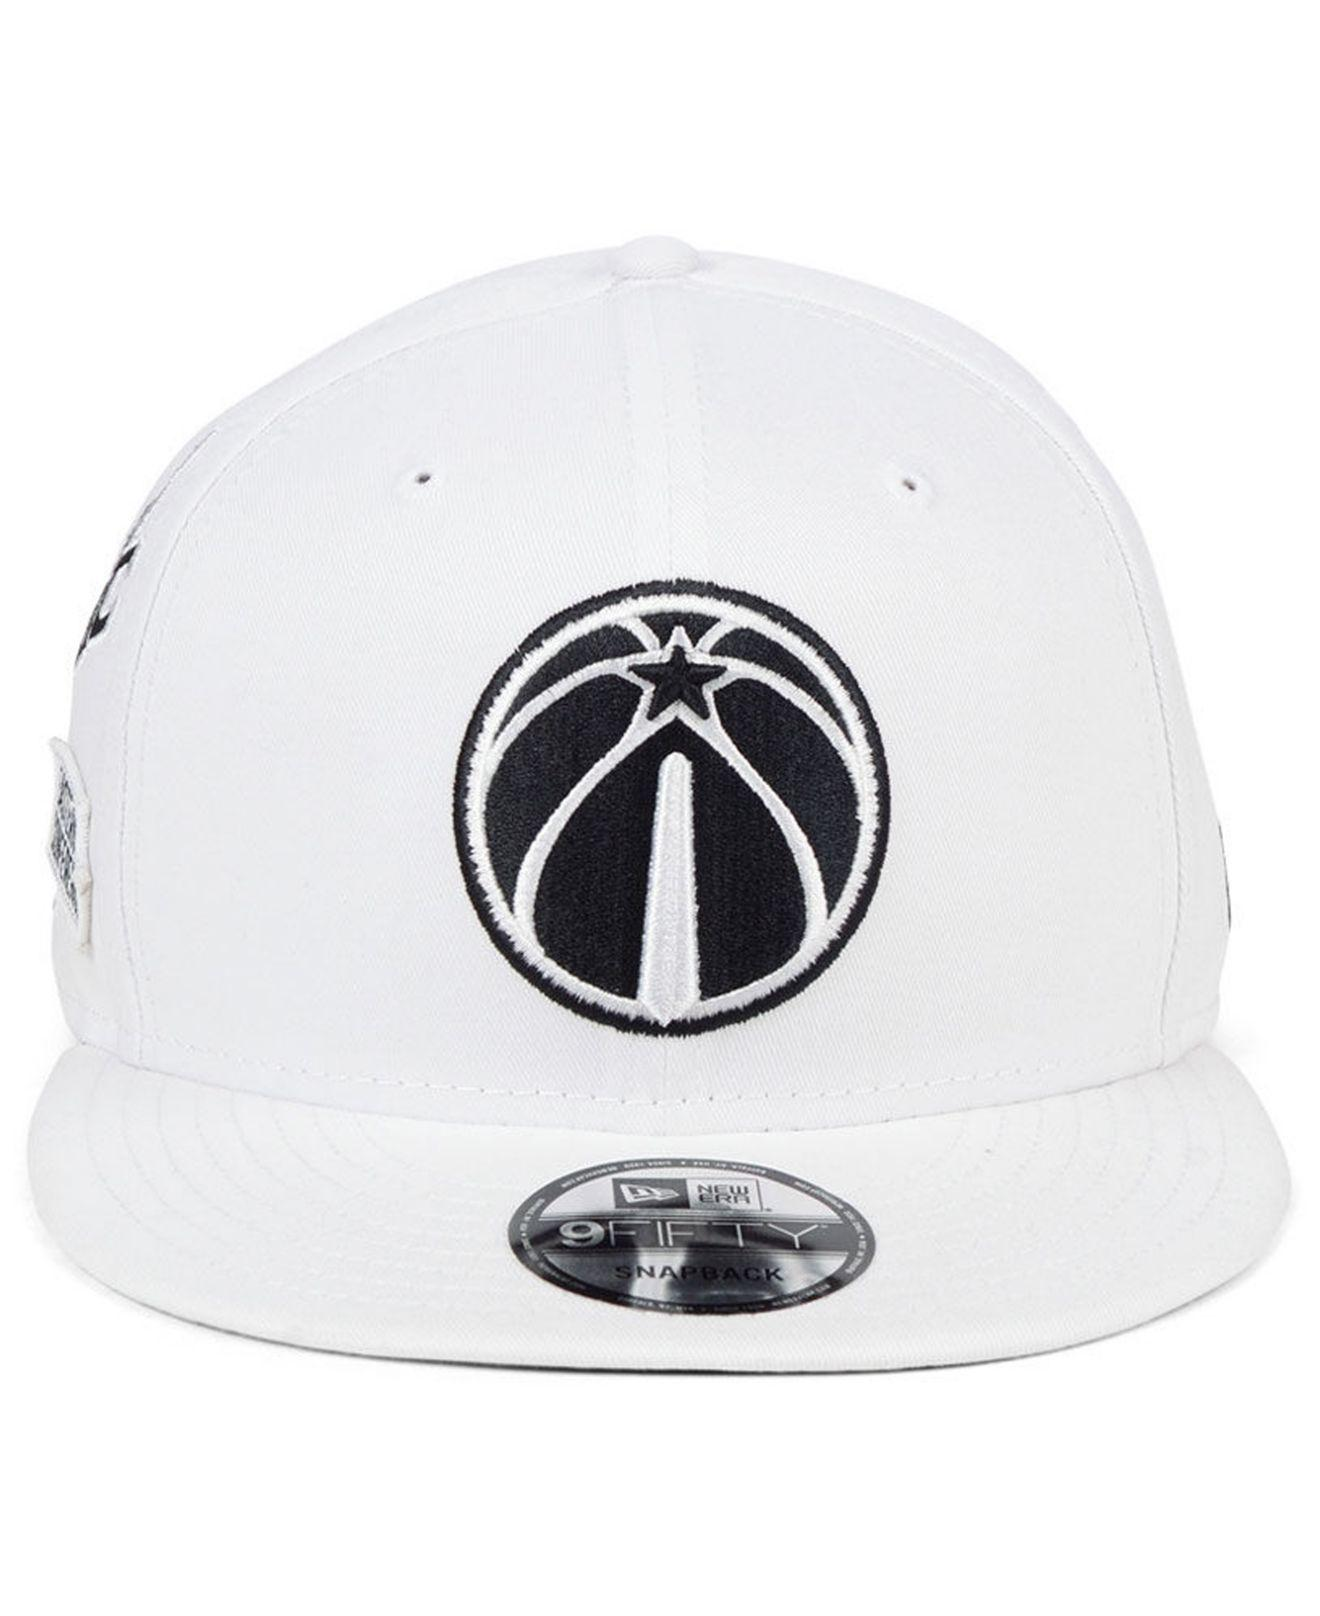 huge discount efe62 06e65 Lyst - KTZ Washington Wizards Night Sky 9fifty Snapback Cap in White for Men